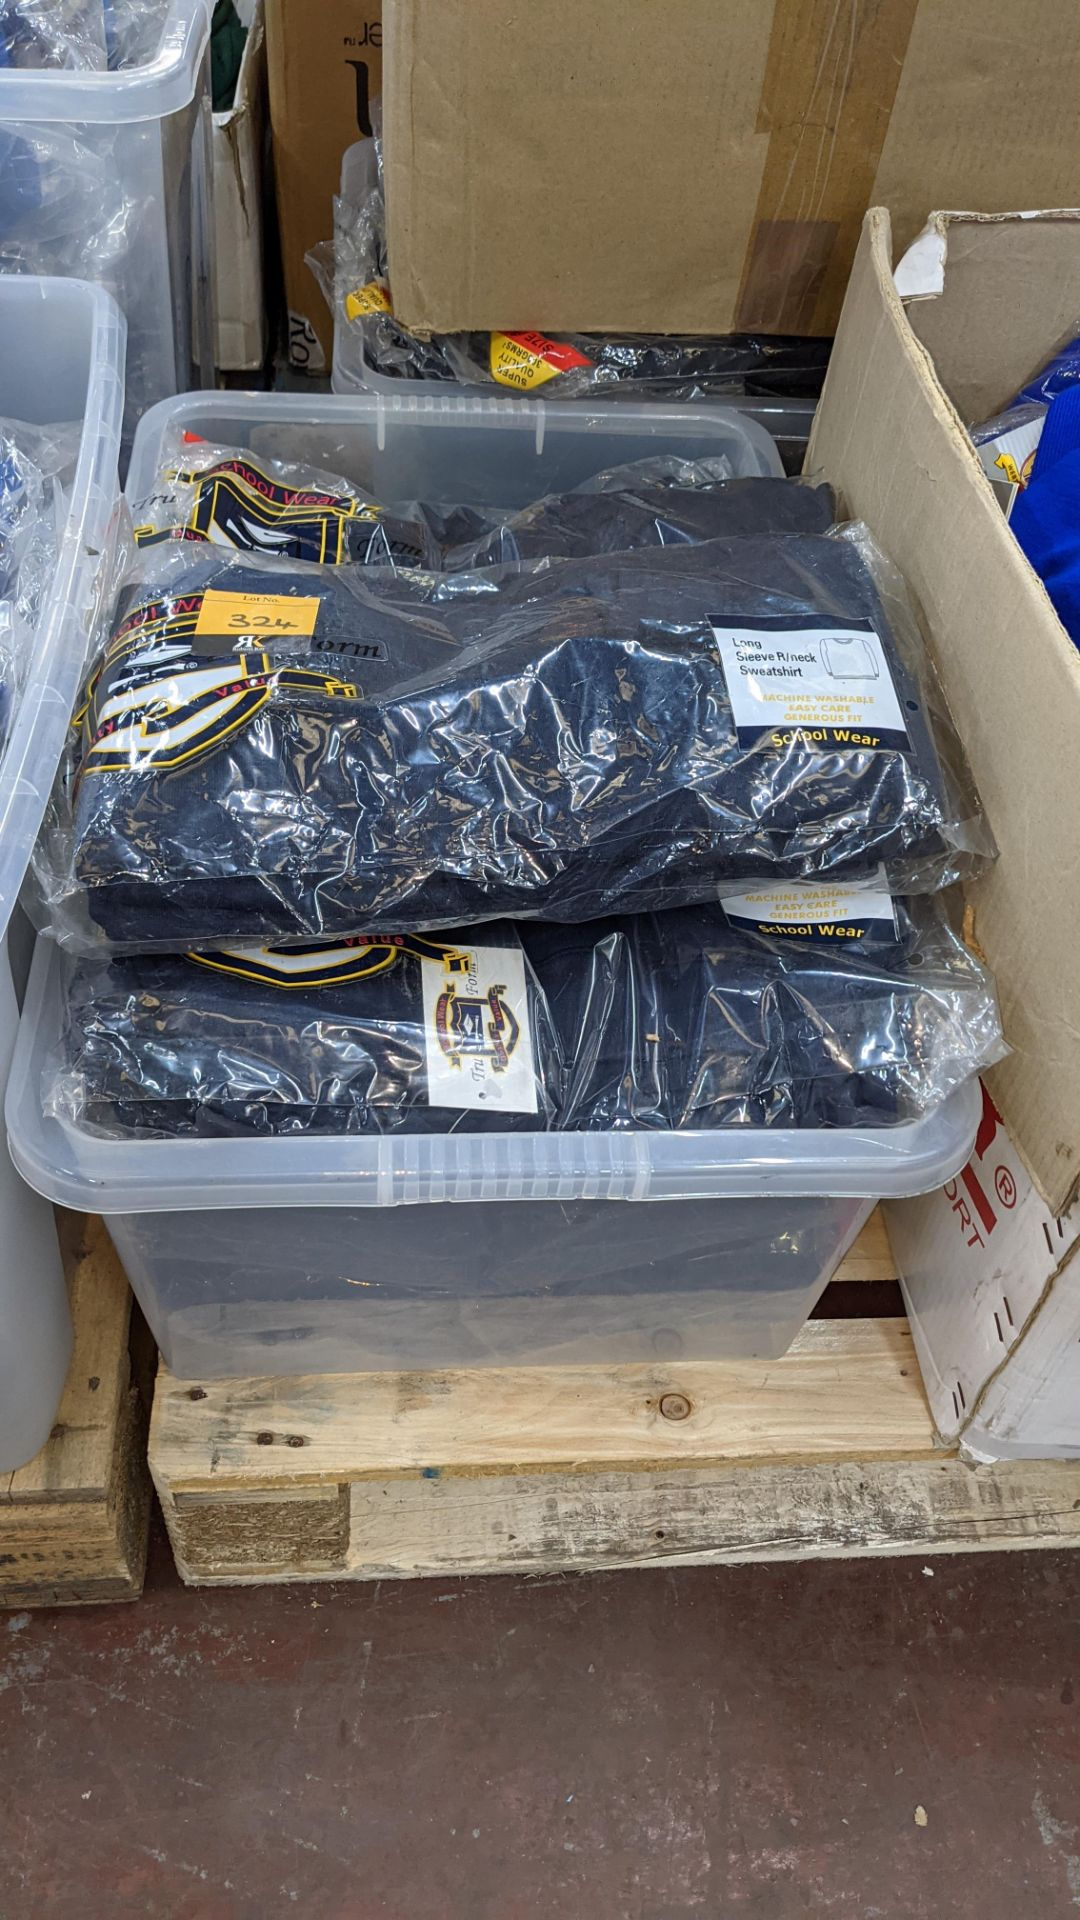 Approx 27 off navy long sleeve children's sweatshirts - the contents of 1 crate. NB crate excluded - Image 2 of 4